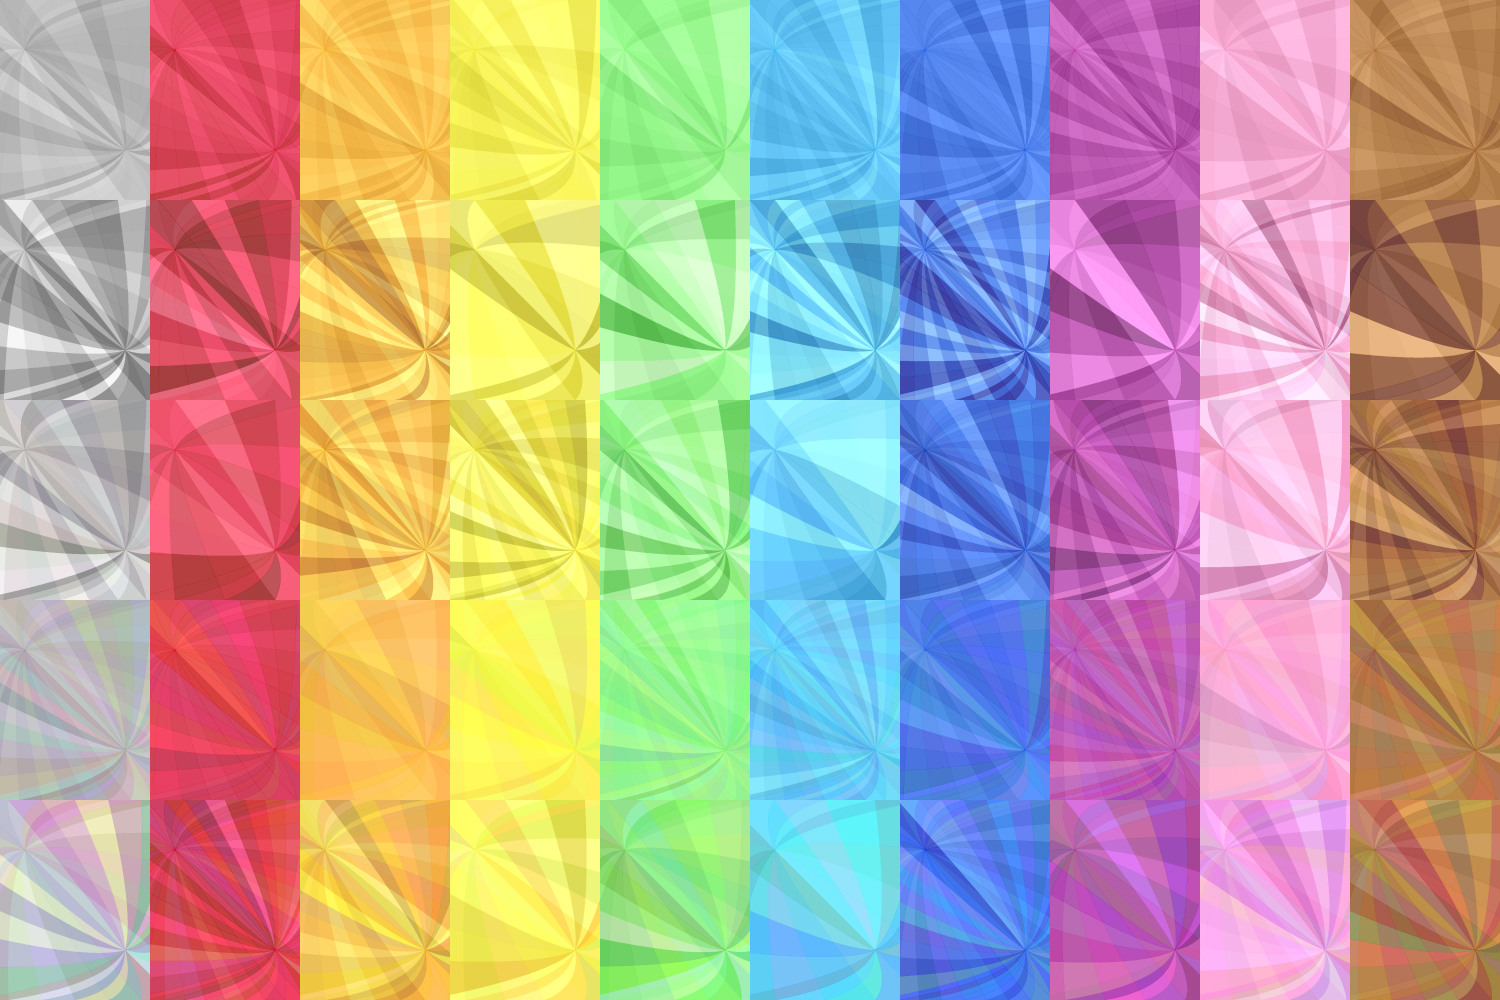 50 Curved Backgrounds (AI, EPS, JPG 5000x5000) example image 3